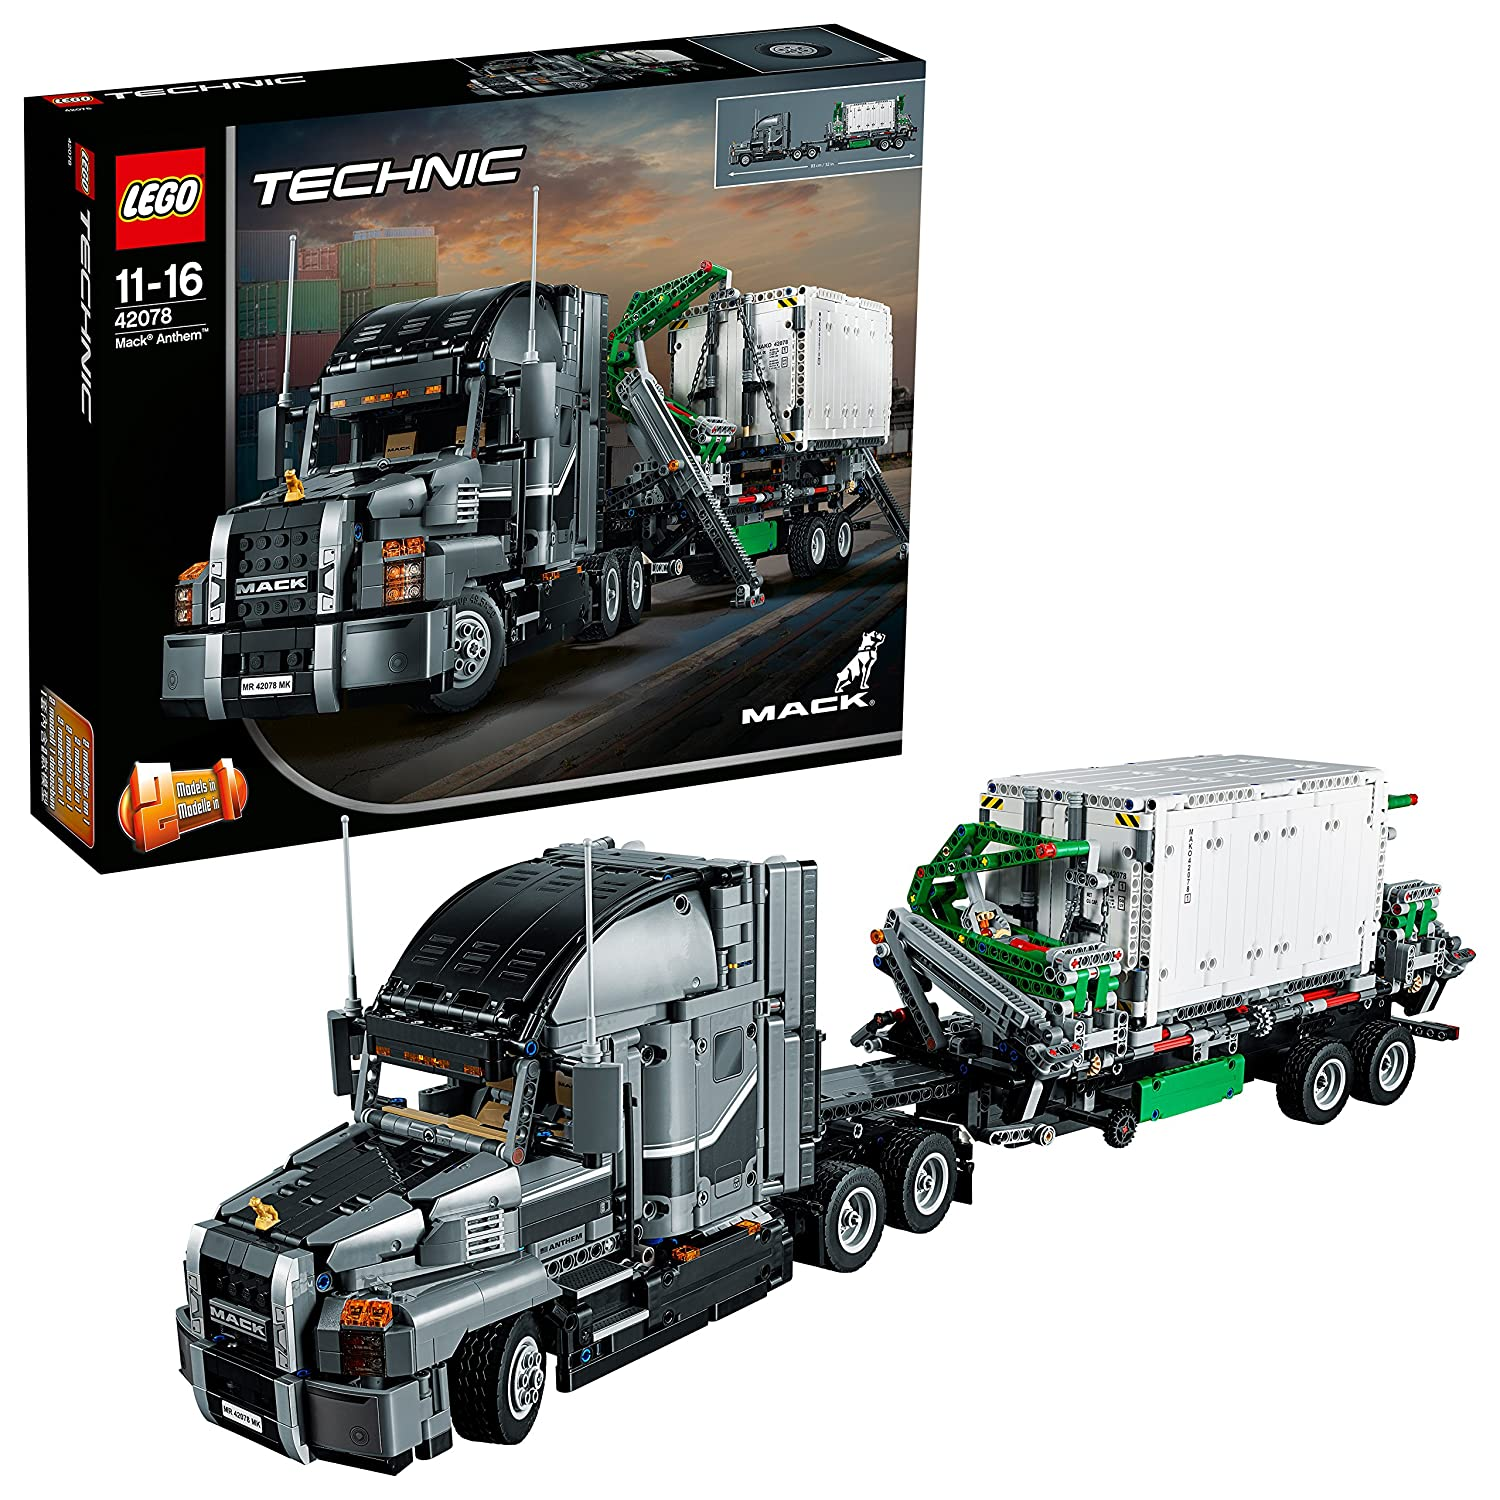 LEGO Technic 42078 - Mack Anthem, Konstruktionsspielzeug No Name LEGO®